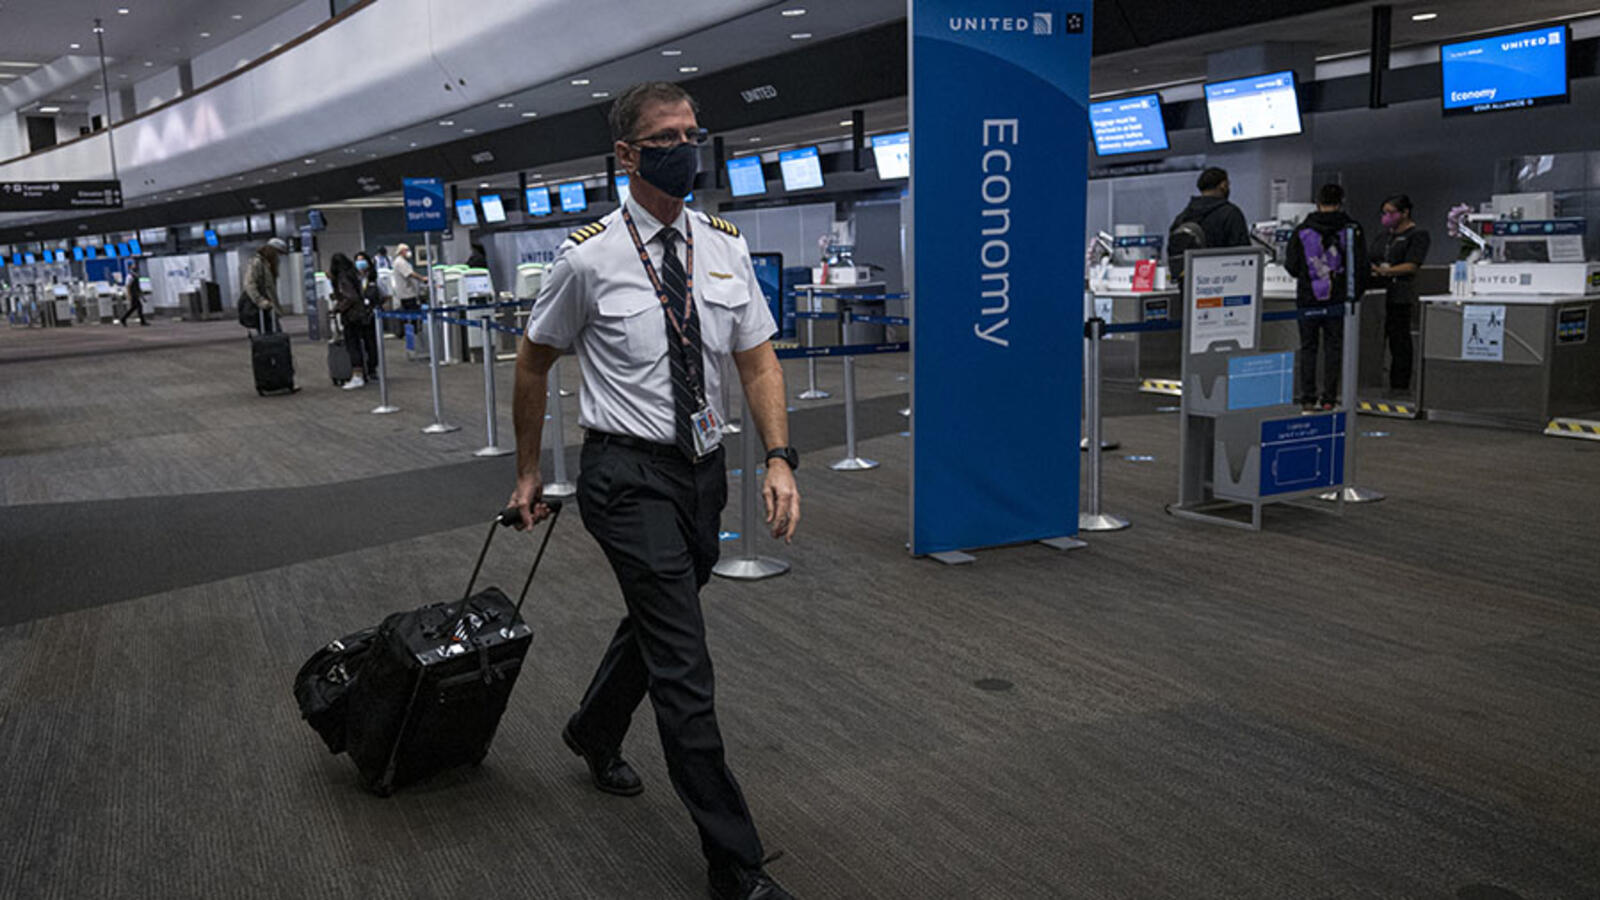 United Suggests Vaccinated Pilots Won't Fly With Unvaccinated Coworkers